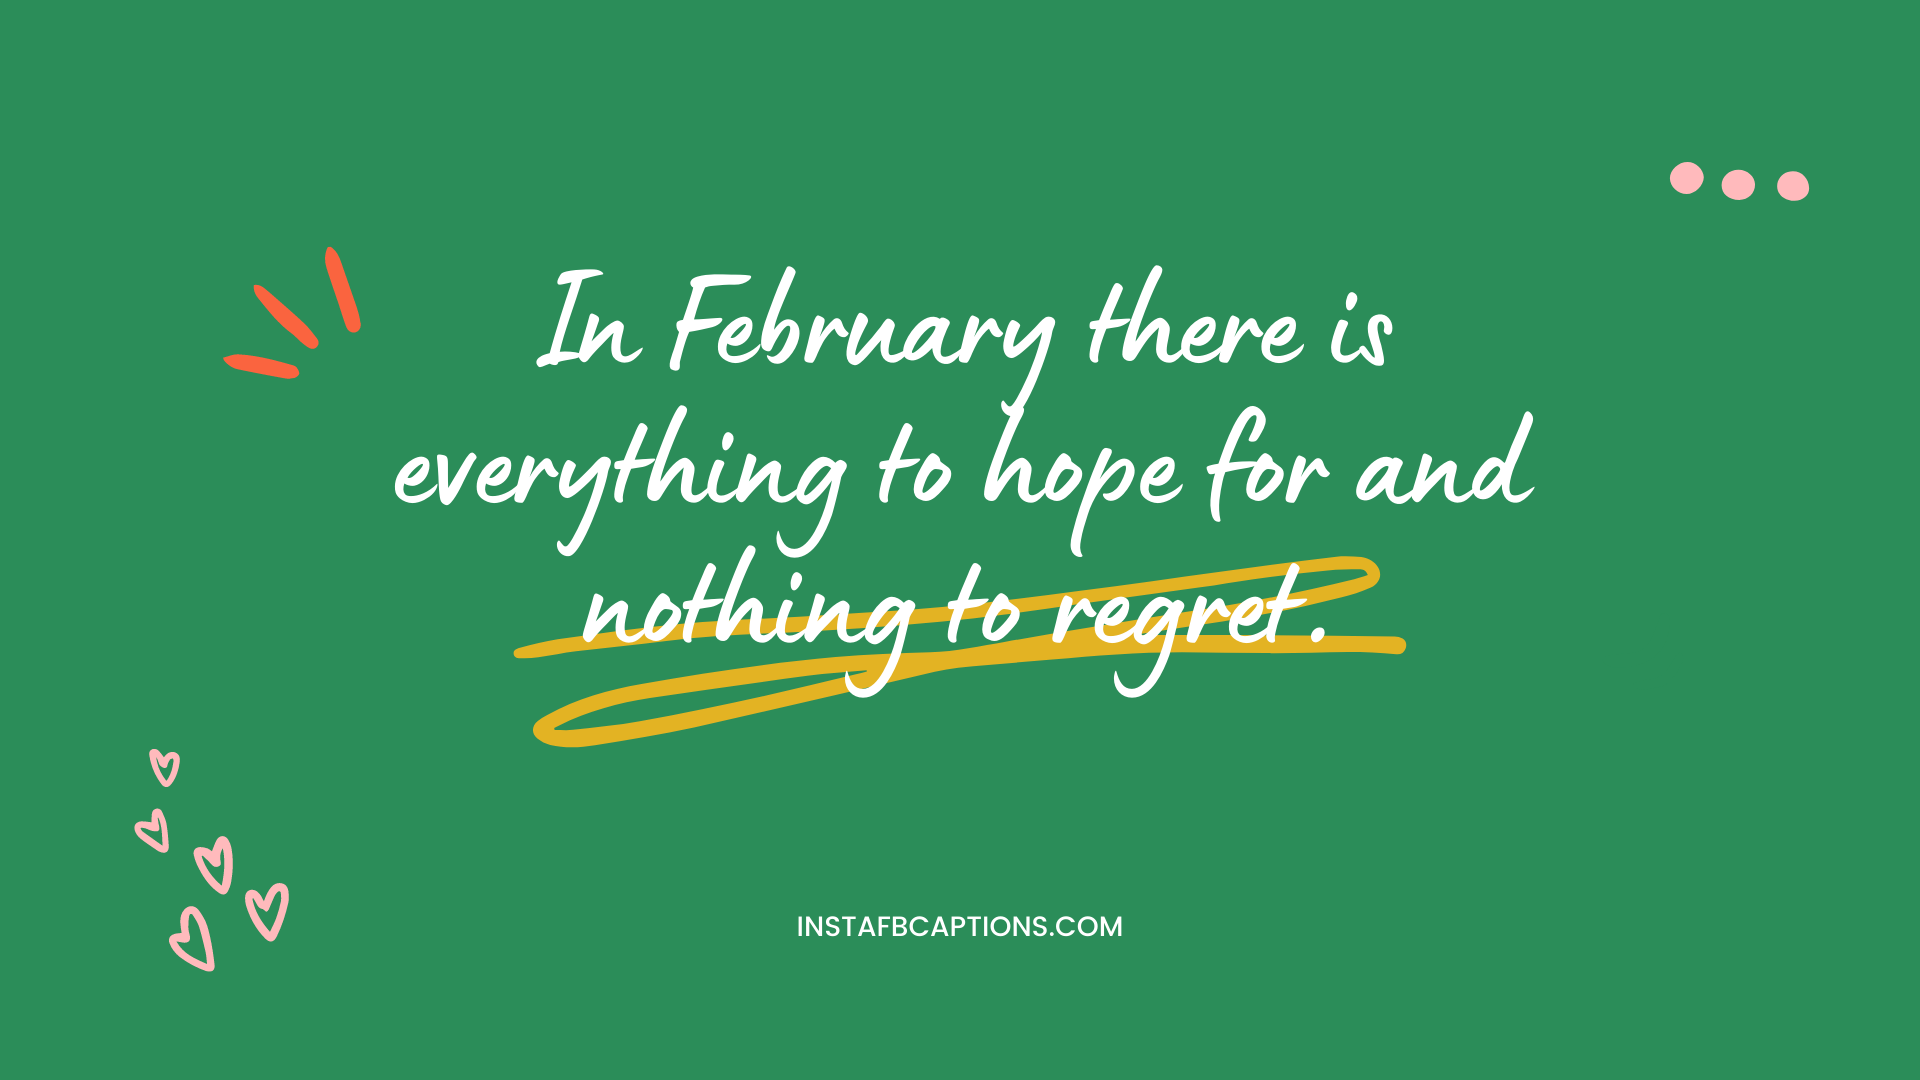 Sayings On February To Use As Captions For Instagram  - Sayings on February to Use as Captions for Instagram - 58+ LEAP YEAR Instagram Captions for Birthdays & February in 2022